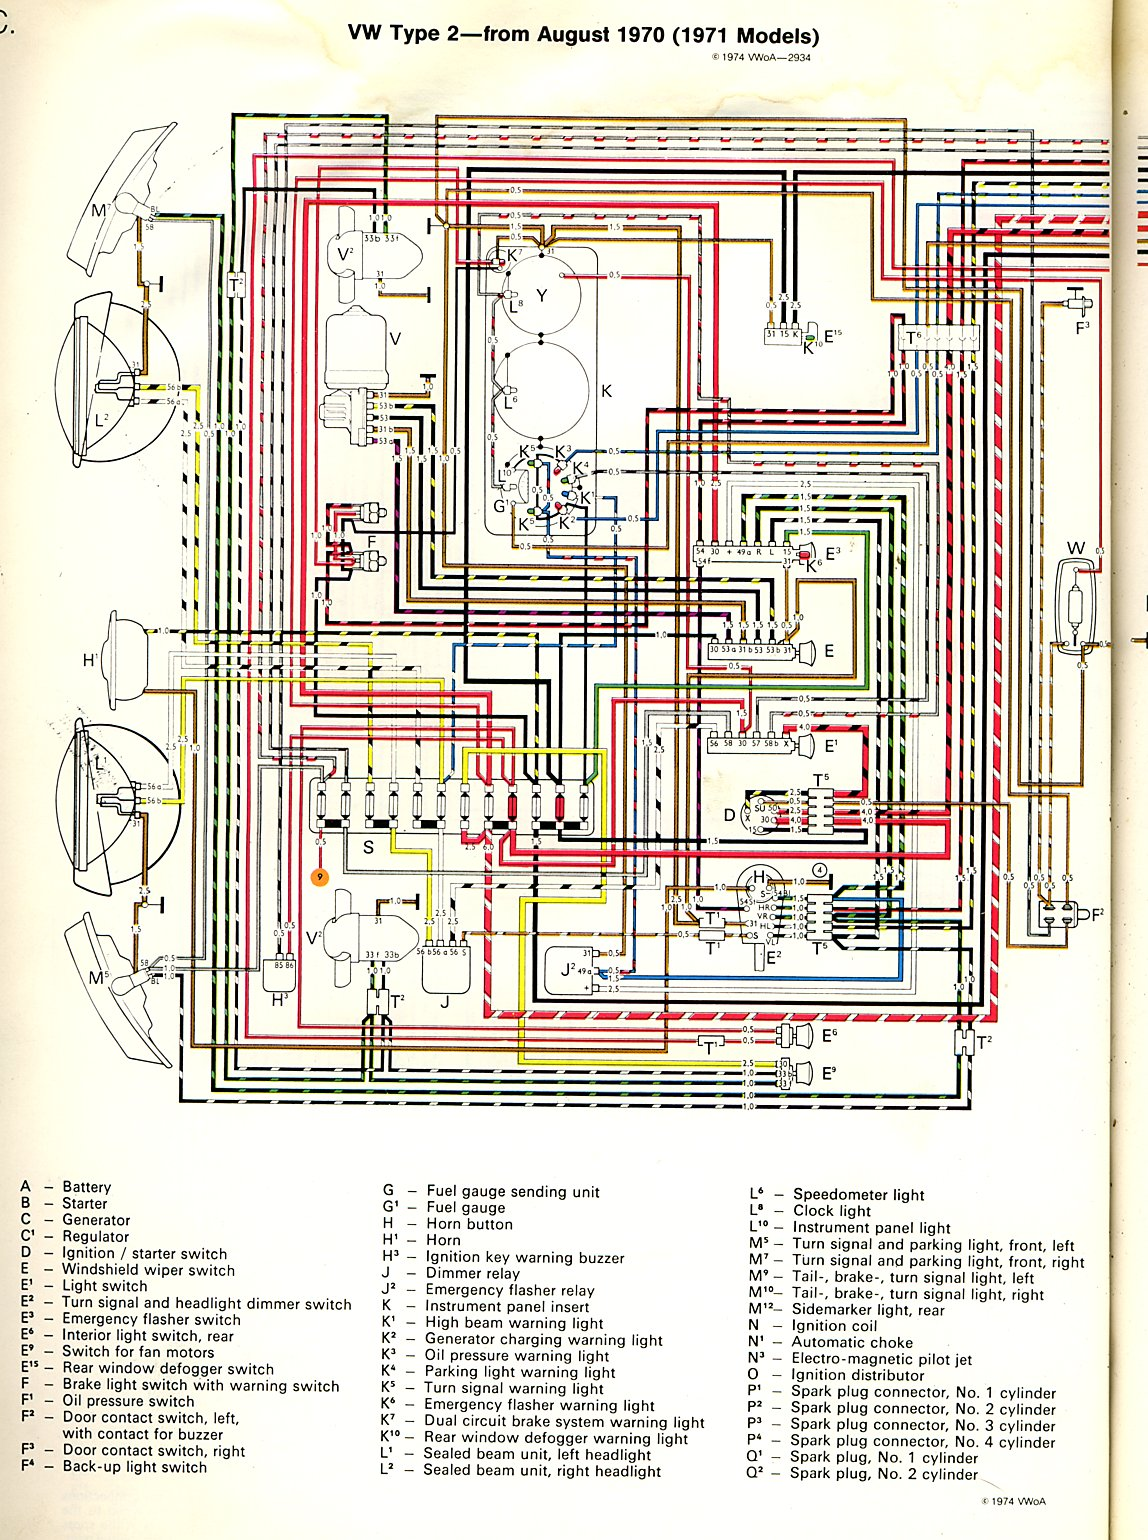 1971 Vw Bus Wiring Diagram - Circuit Diagram Symbols • Vw Beetle Wiring Diagram Rd on 1971 vw super beetle ignition wiring, 1971 vw bug interior, 1971 vw wiper motor wiring, 98 vw beetle fuse diagram, vw new beetle engine diagram, 1974 firebird wiring diagram, jaguar s type wiring diagram, vw 1971 fuse diagram, 1971 toyota landcruiser wiring diagram, 2009 tiguan fuse diagram, 1971 vw beetle brakes diagram, 1971 vw wiring diagram colored, 1971 vw transporter wiring diagram, 1974 karmann ghia wiring diagram, super beetle brake diagram, 2000 volkswagen jetta stereo wiring diagram, 1971 volkswagen wiring diagram, 1968 vw beetle engine diagram, 1974 vw engine diagram, volkswagen fuel diagram,